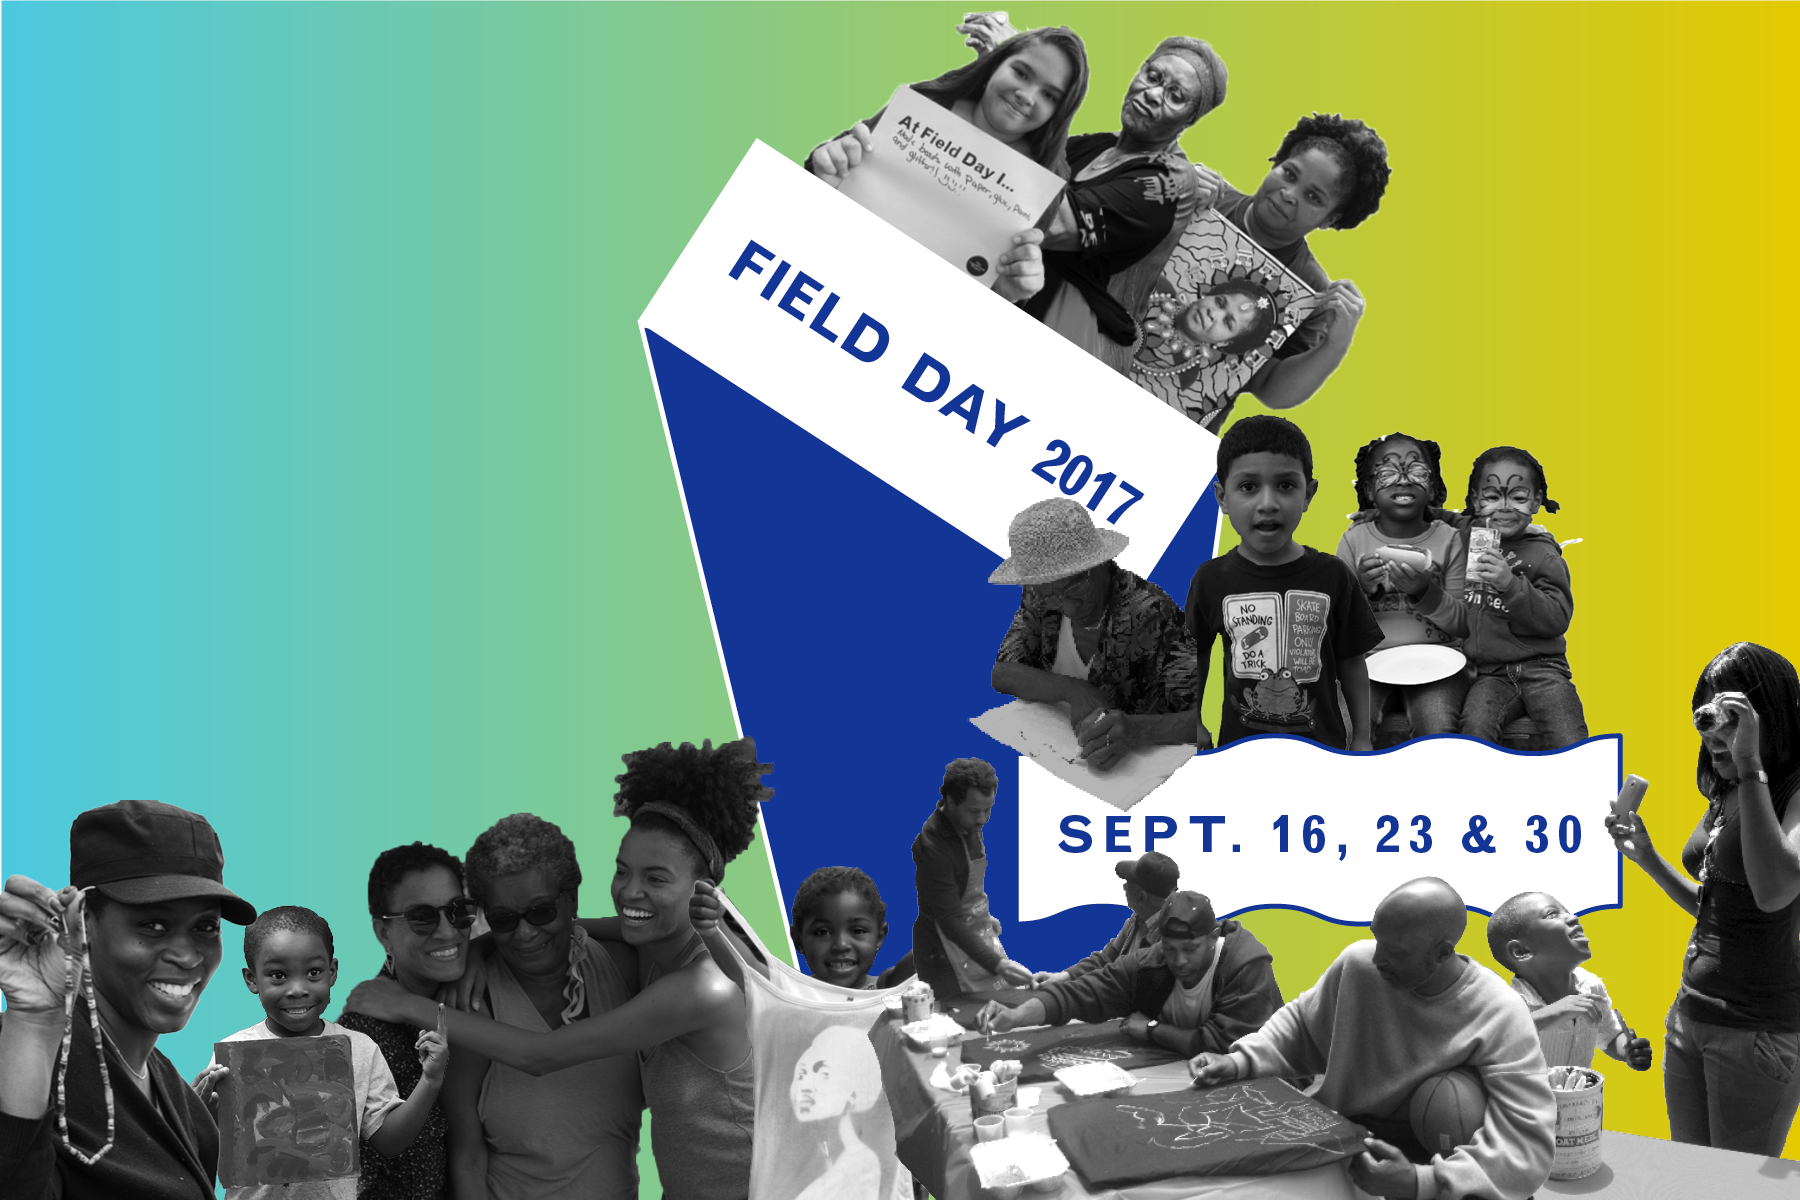 Field Day 2017: Housing Not Warehousing! Walk